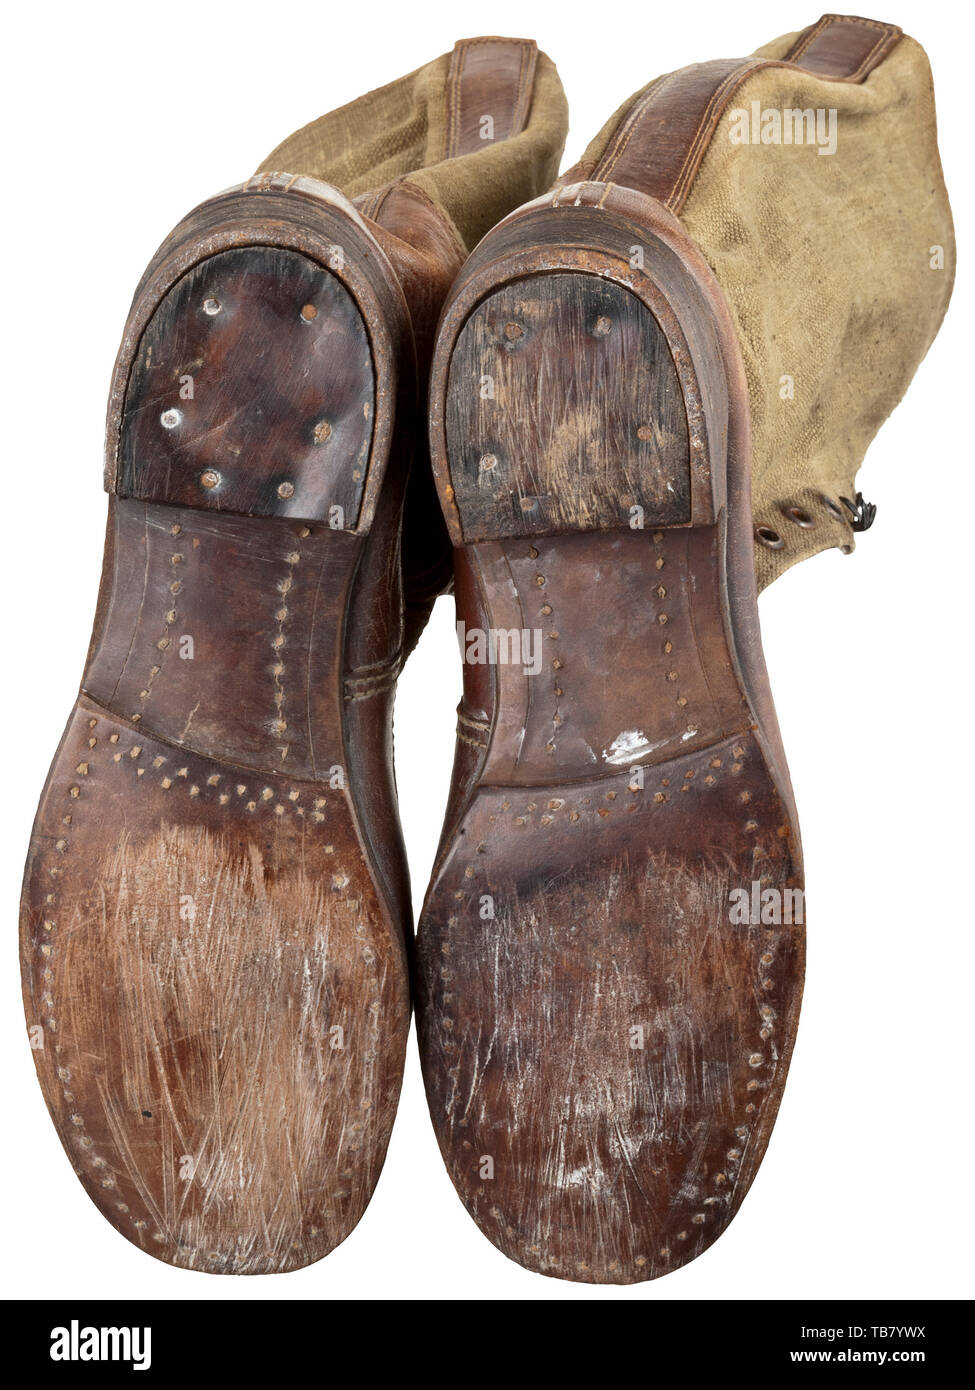 A pair of lace-up boots to the tropical uniform, Depot pieces. Soles and reinforcements in brown leather, brown canvas shafts with brown painted iron eyelets and hooks (filmed with rust), linen lining stamped with the size and the manufacturer's mark. Welted leather soles with wooden pegs. Slight signs of wear. historic, historical 20th century, Additional-Rights-Clearance-Info-Not-Available Stock Photo